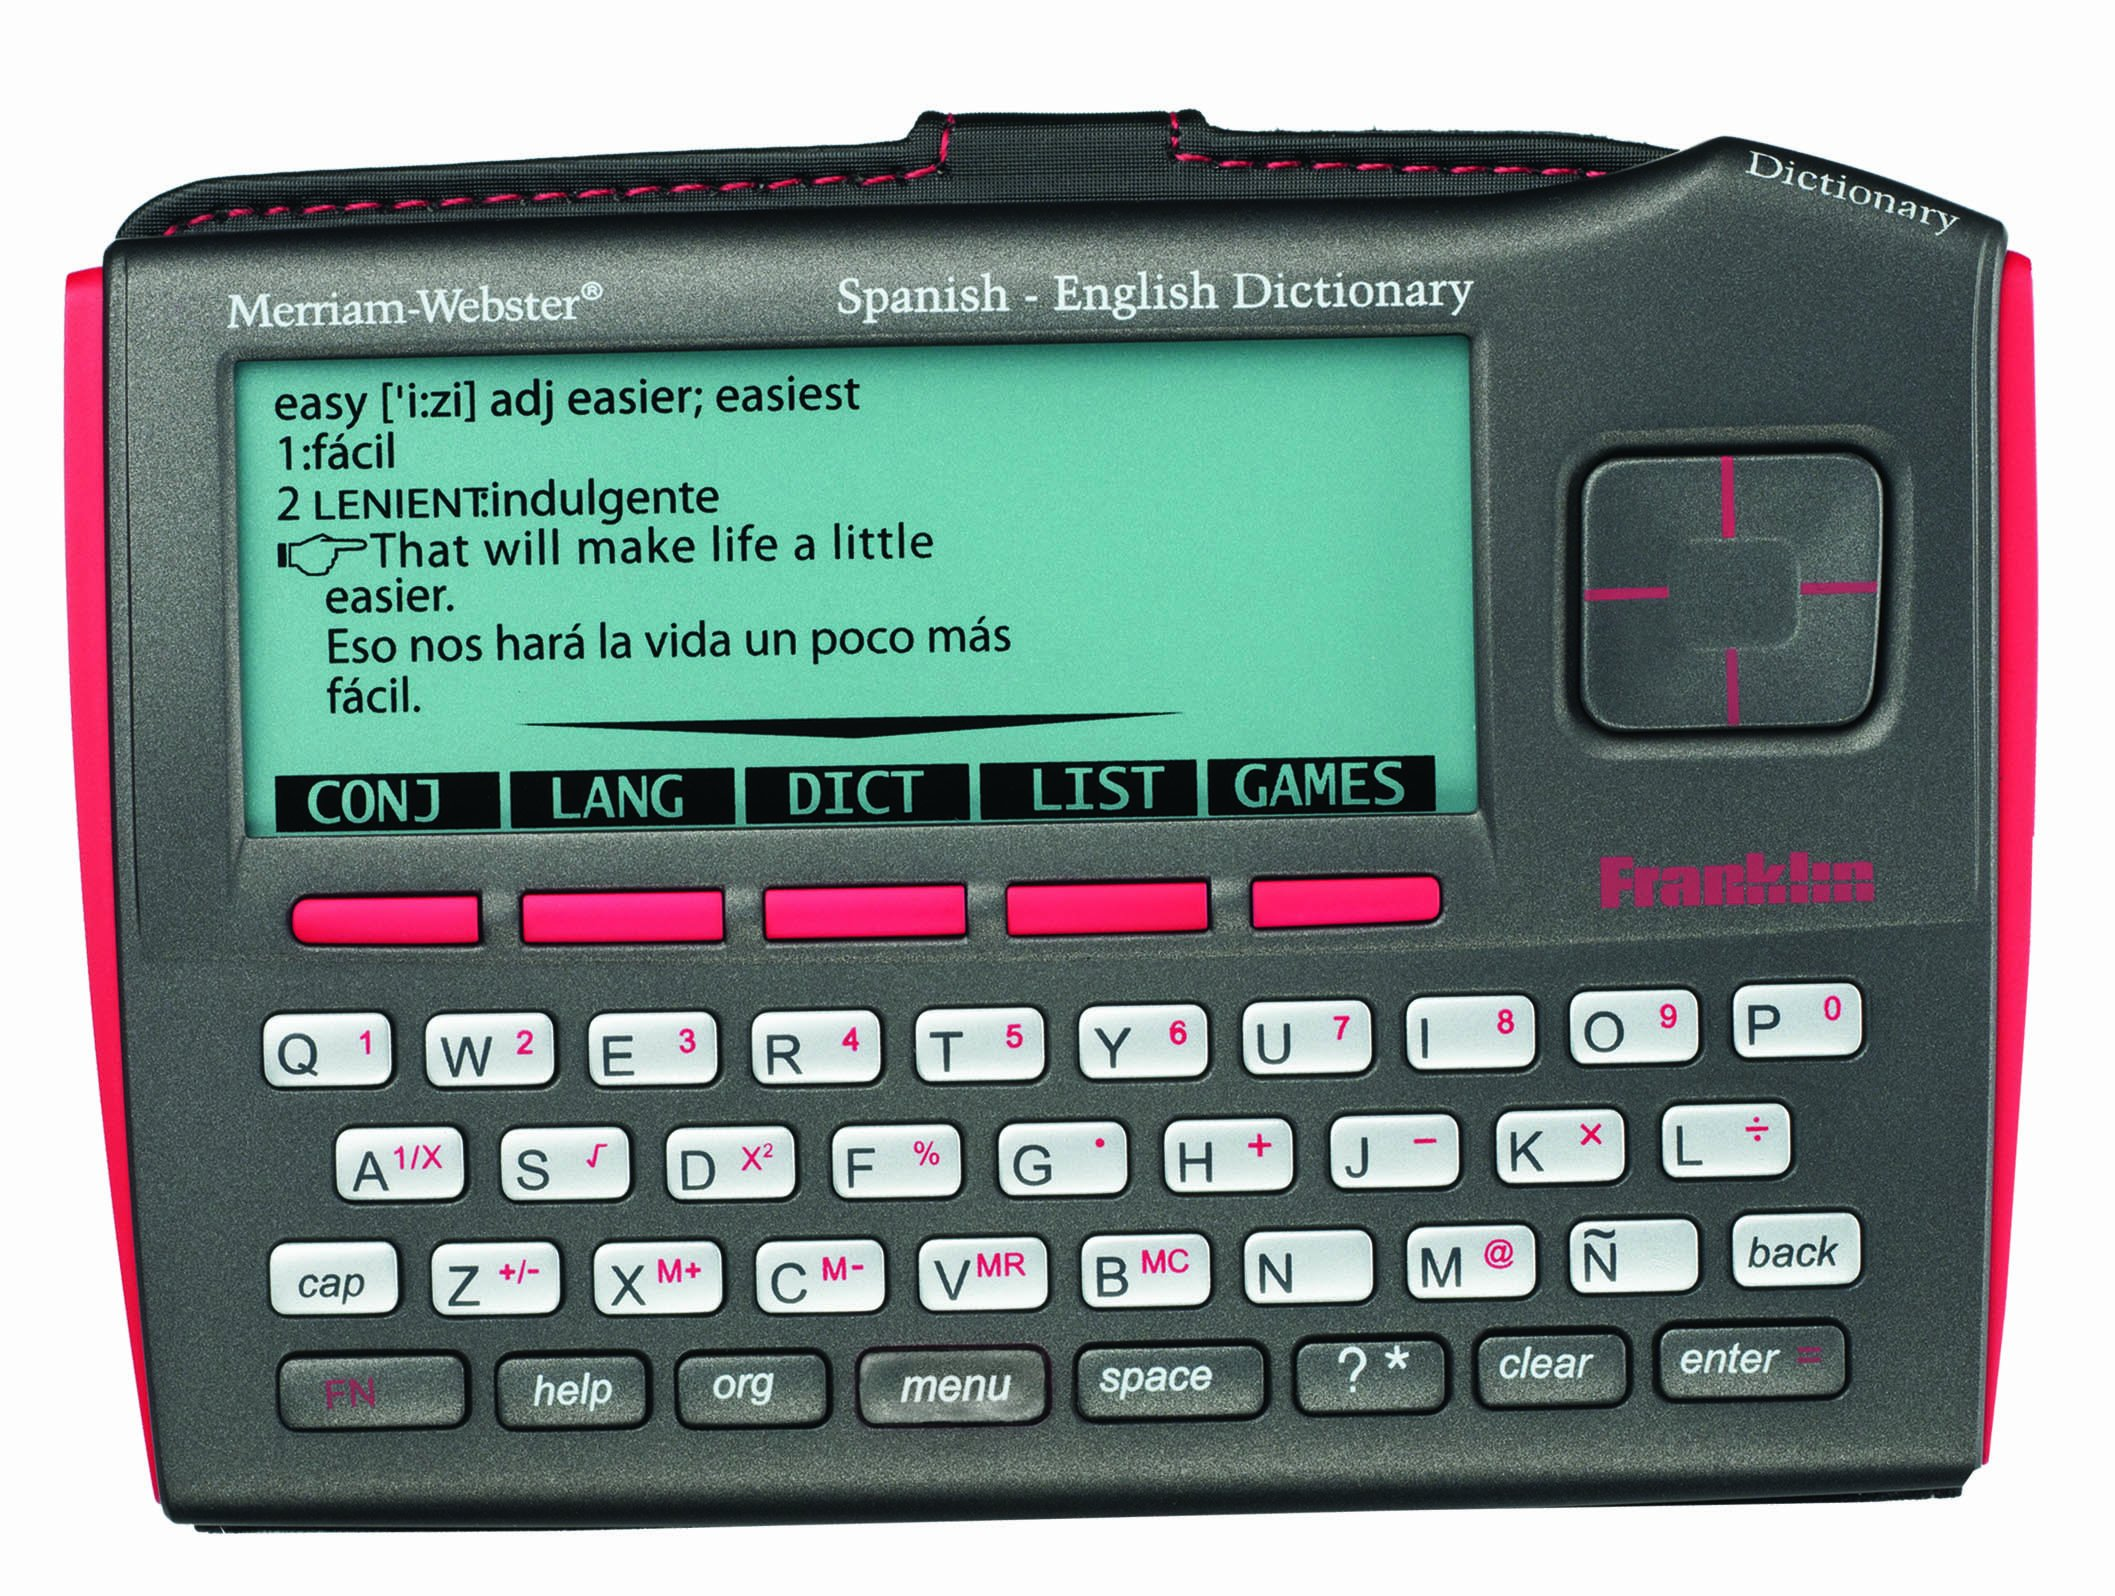 Franklin Merriam-Webster's Spanish-English Bilingual Dictionary (DBE-1510)